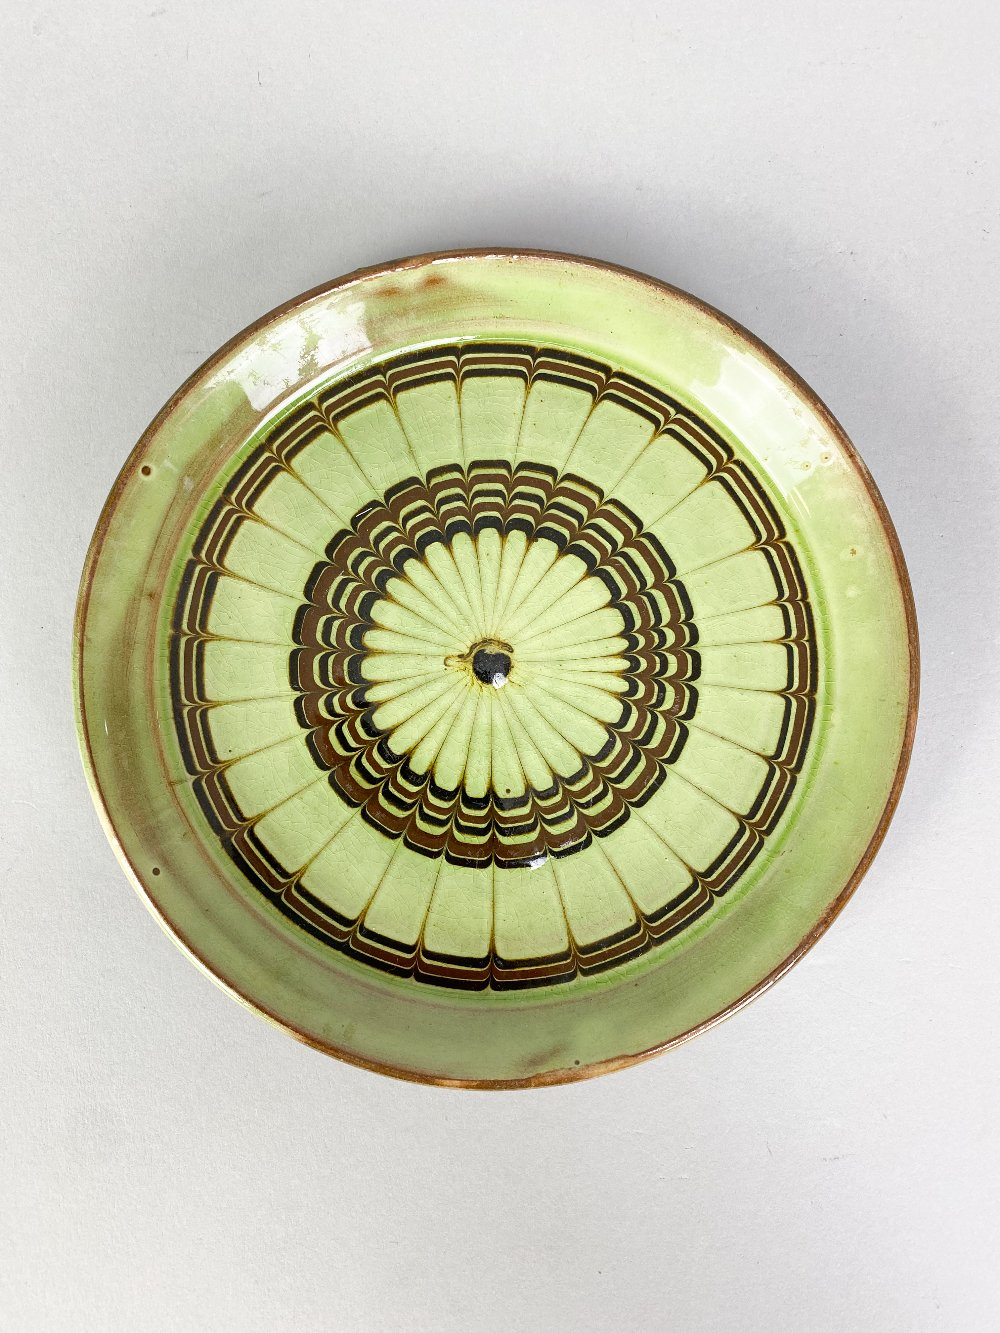 SIDNEY TUSTIN (1914-2005) for Winchcombe Pottery; a small slipware plate with feathered - Image 3 of 5